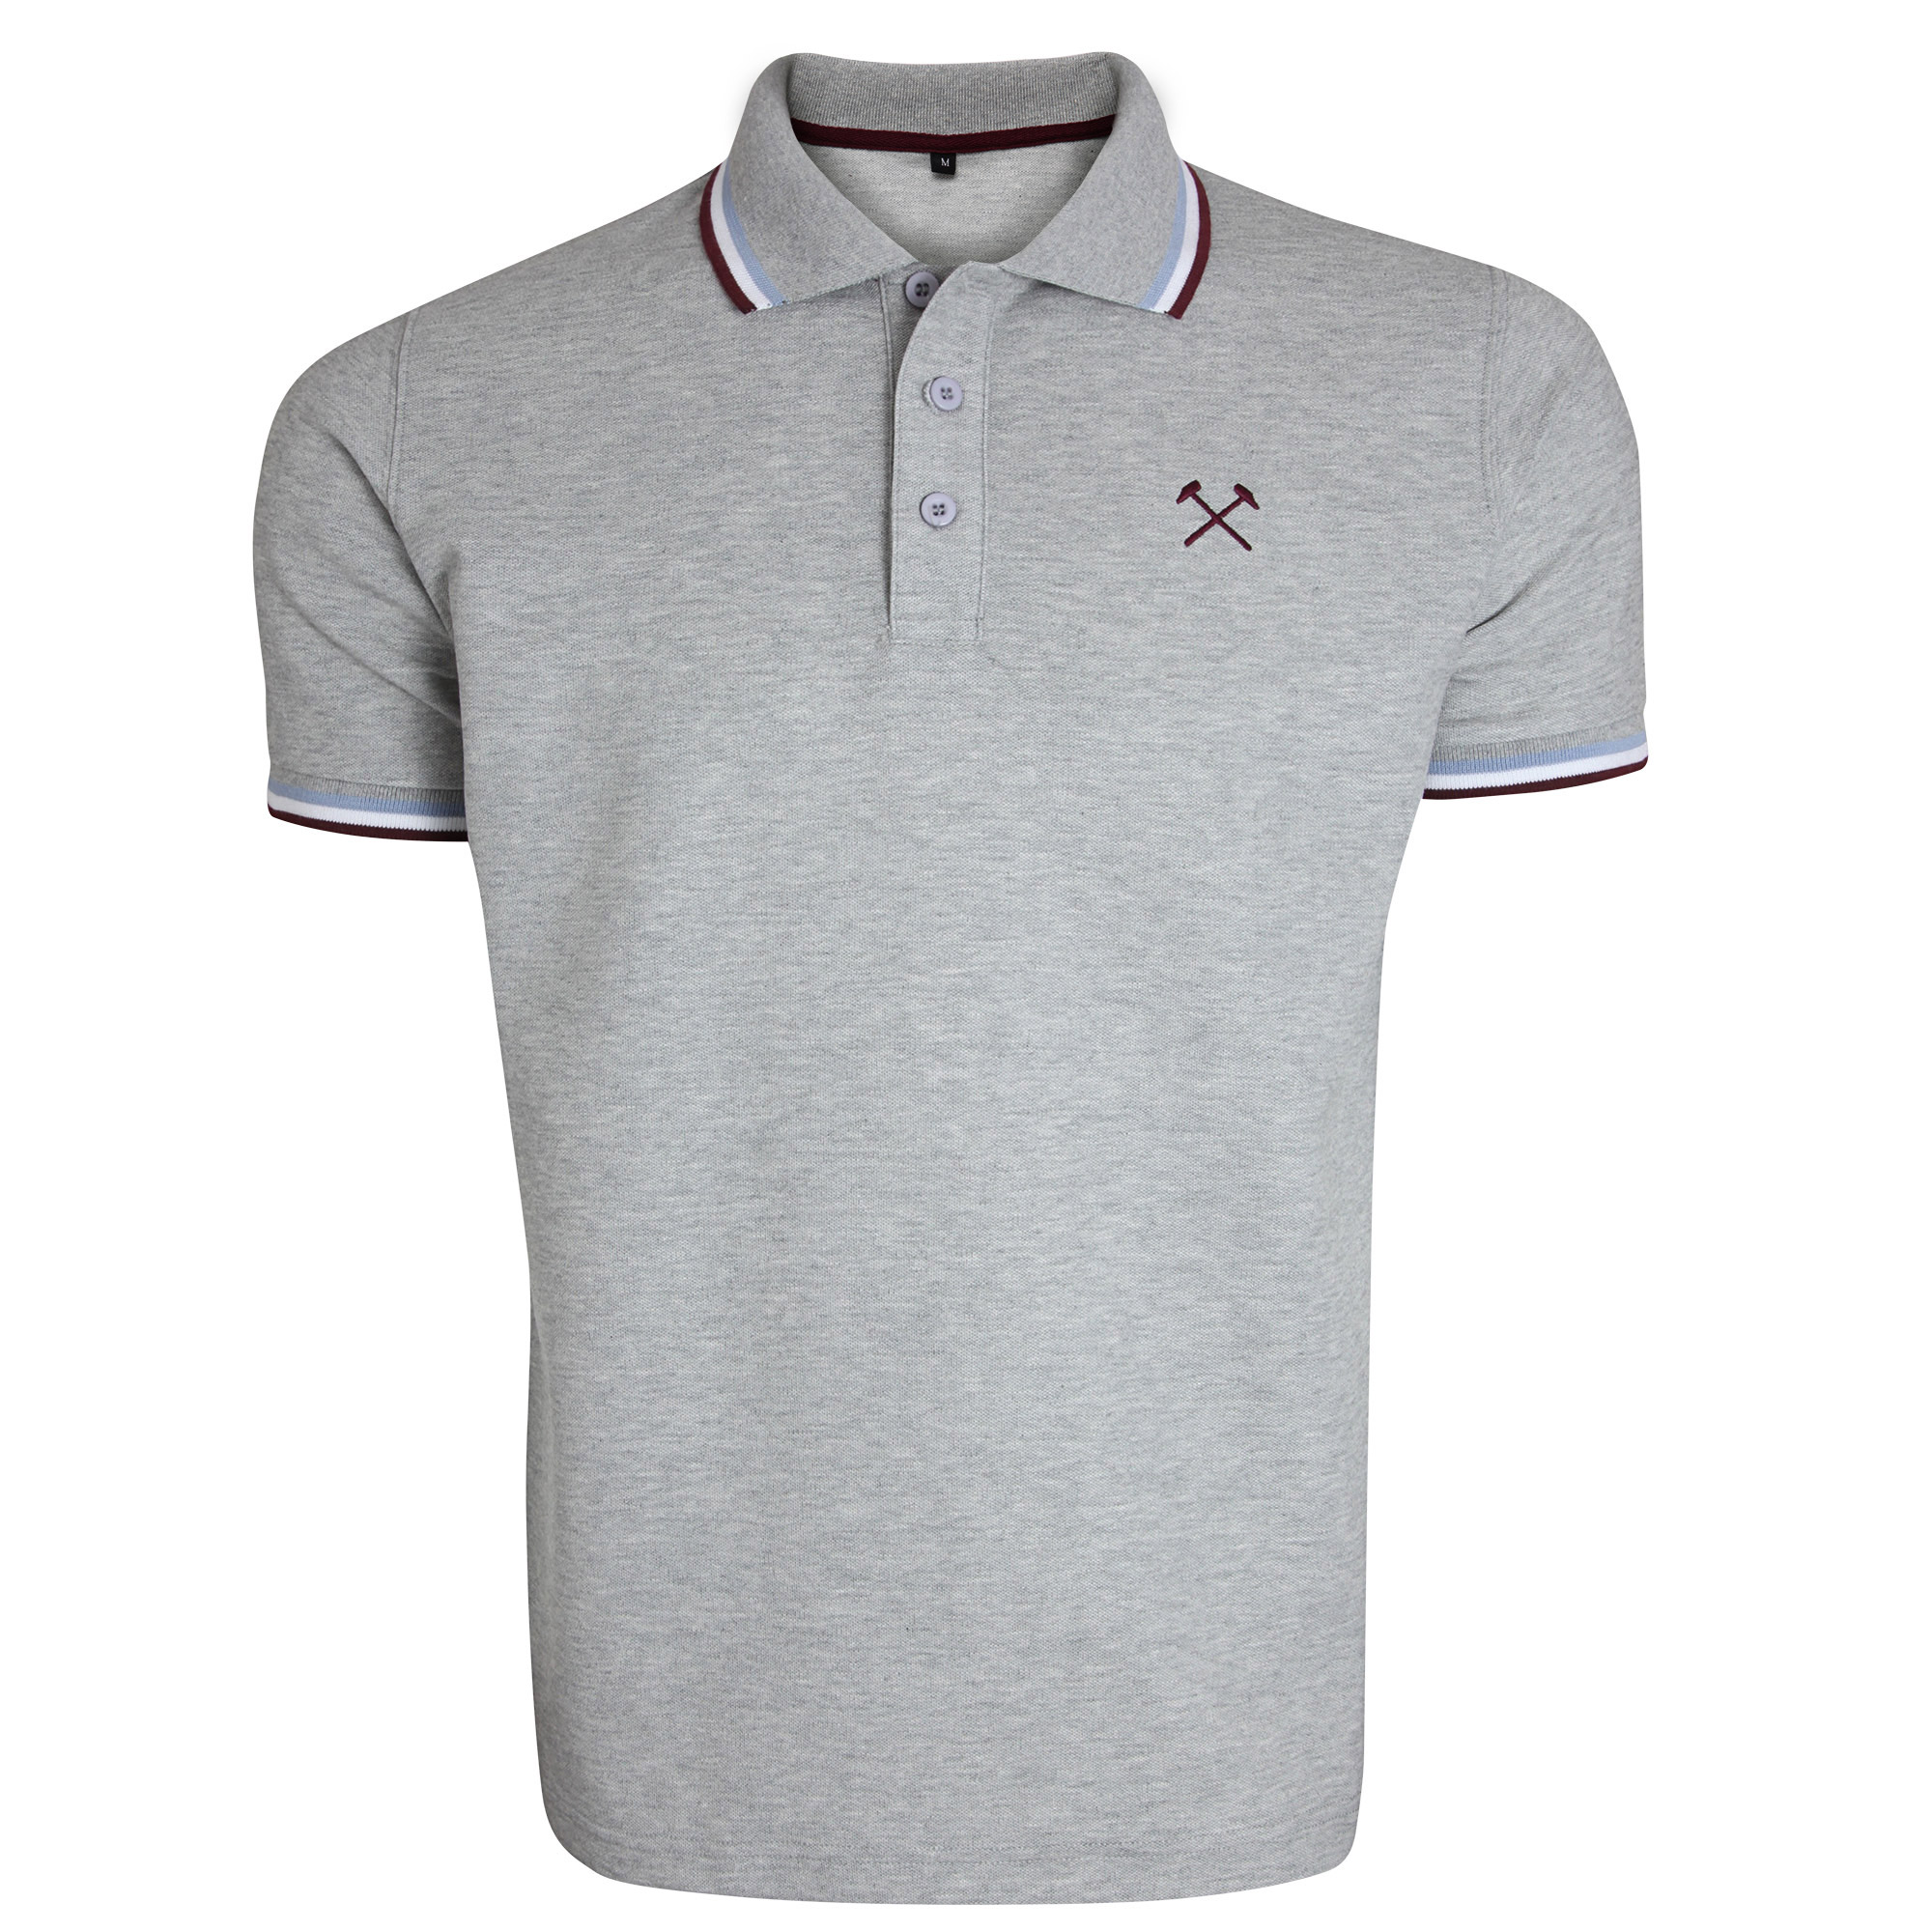 GREY TIPPED HAMMERS POLO